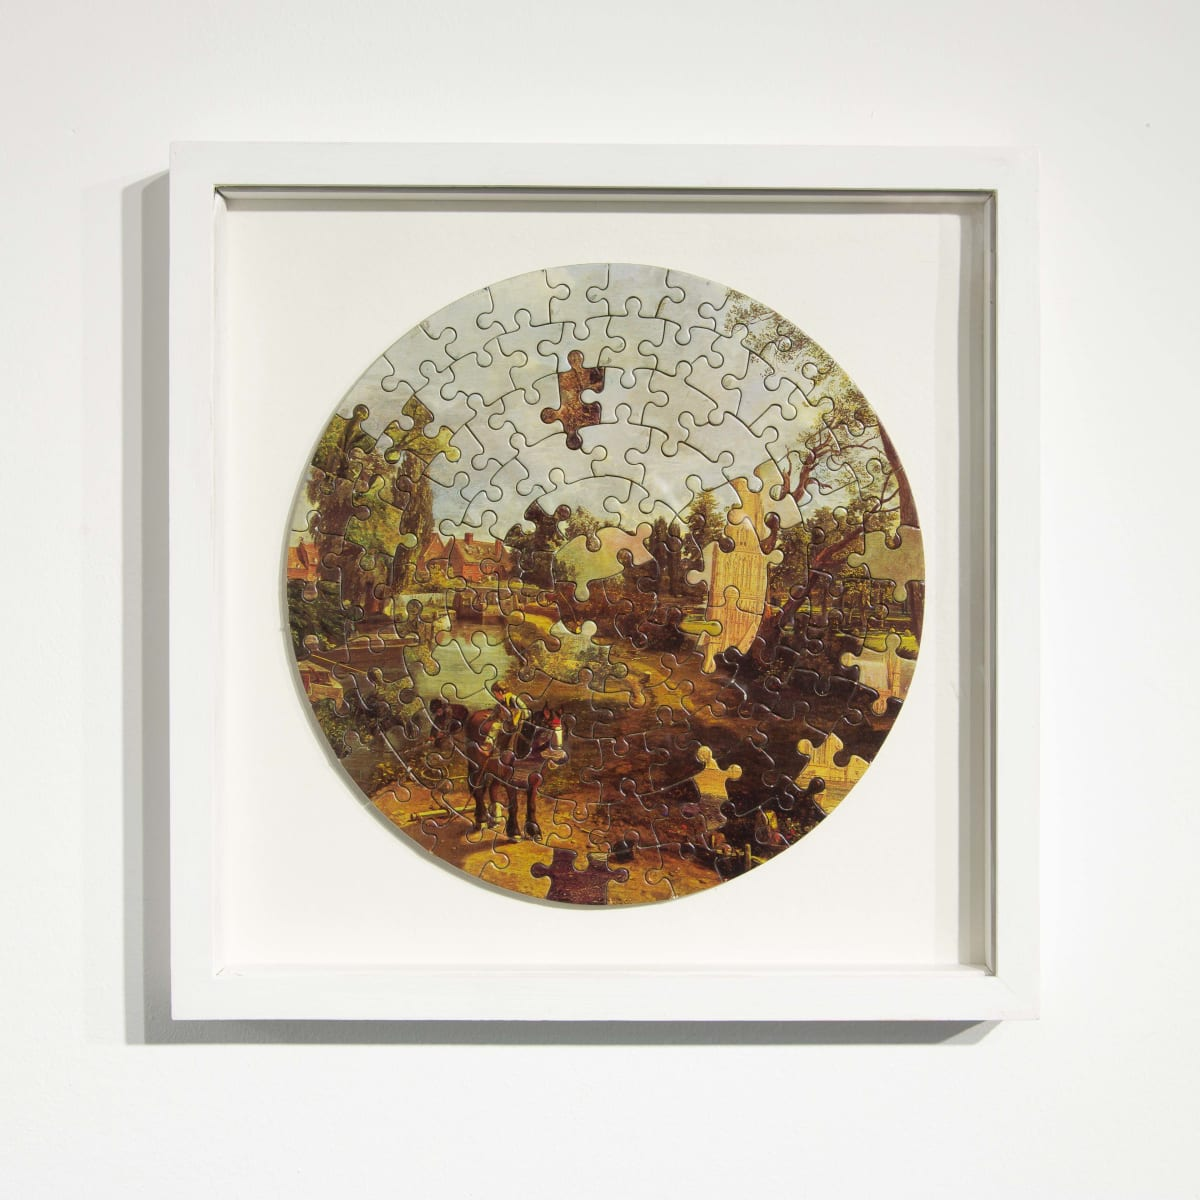 Darren Coffield Constable [II], 2014 Lithograph on die-cut board 22.5 cm (d) 35.5 x 35.5 cm (framed) Edition of 2